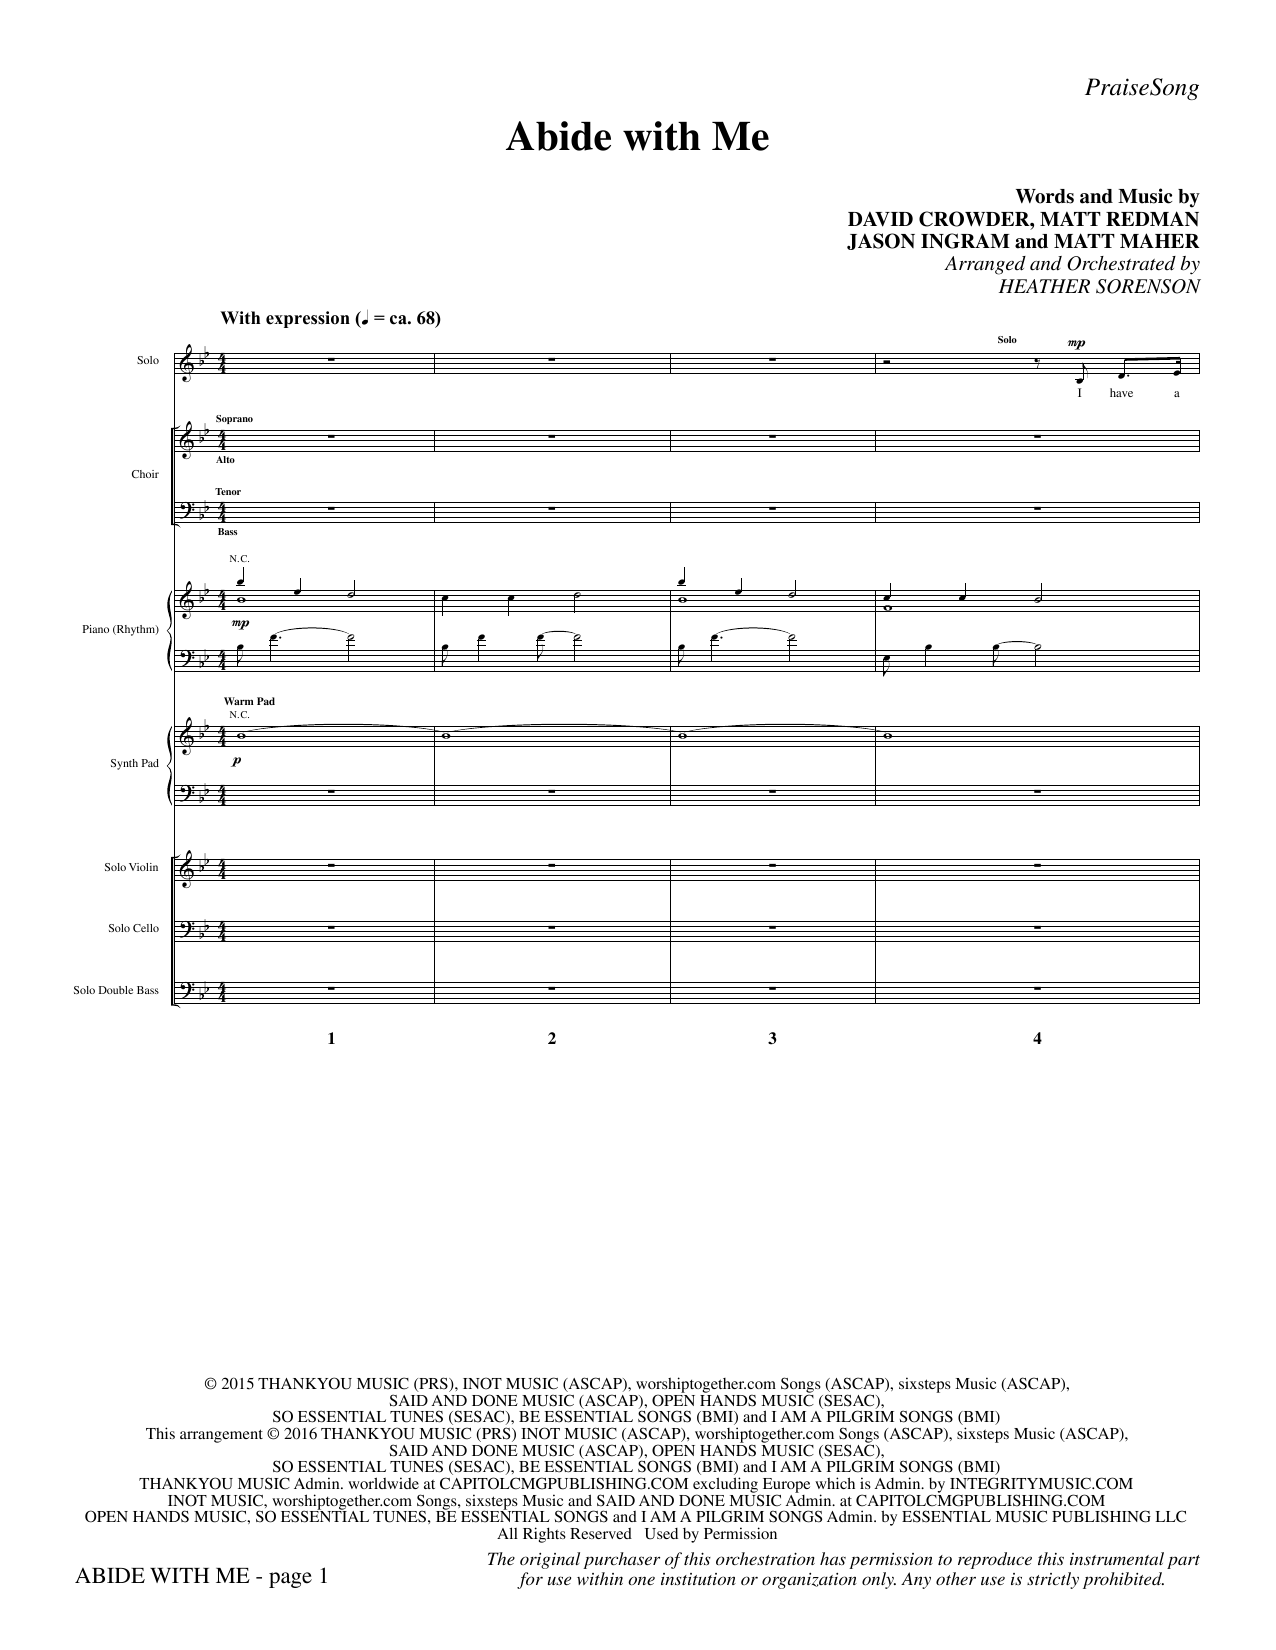 Abide with Me (COMPLETE) sheet music for orchestra/band by Heather Sorenson, David Crowder, Jason Ingram, Matt Maher and Matt Redman. Score Image Preview.